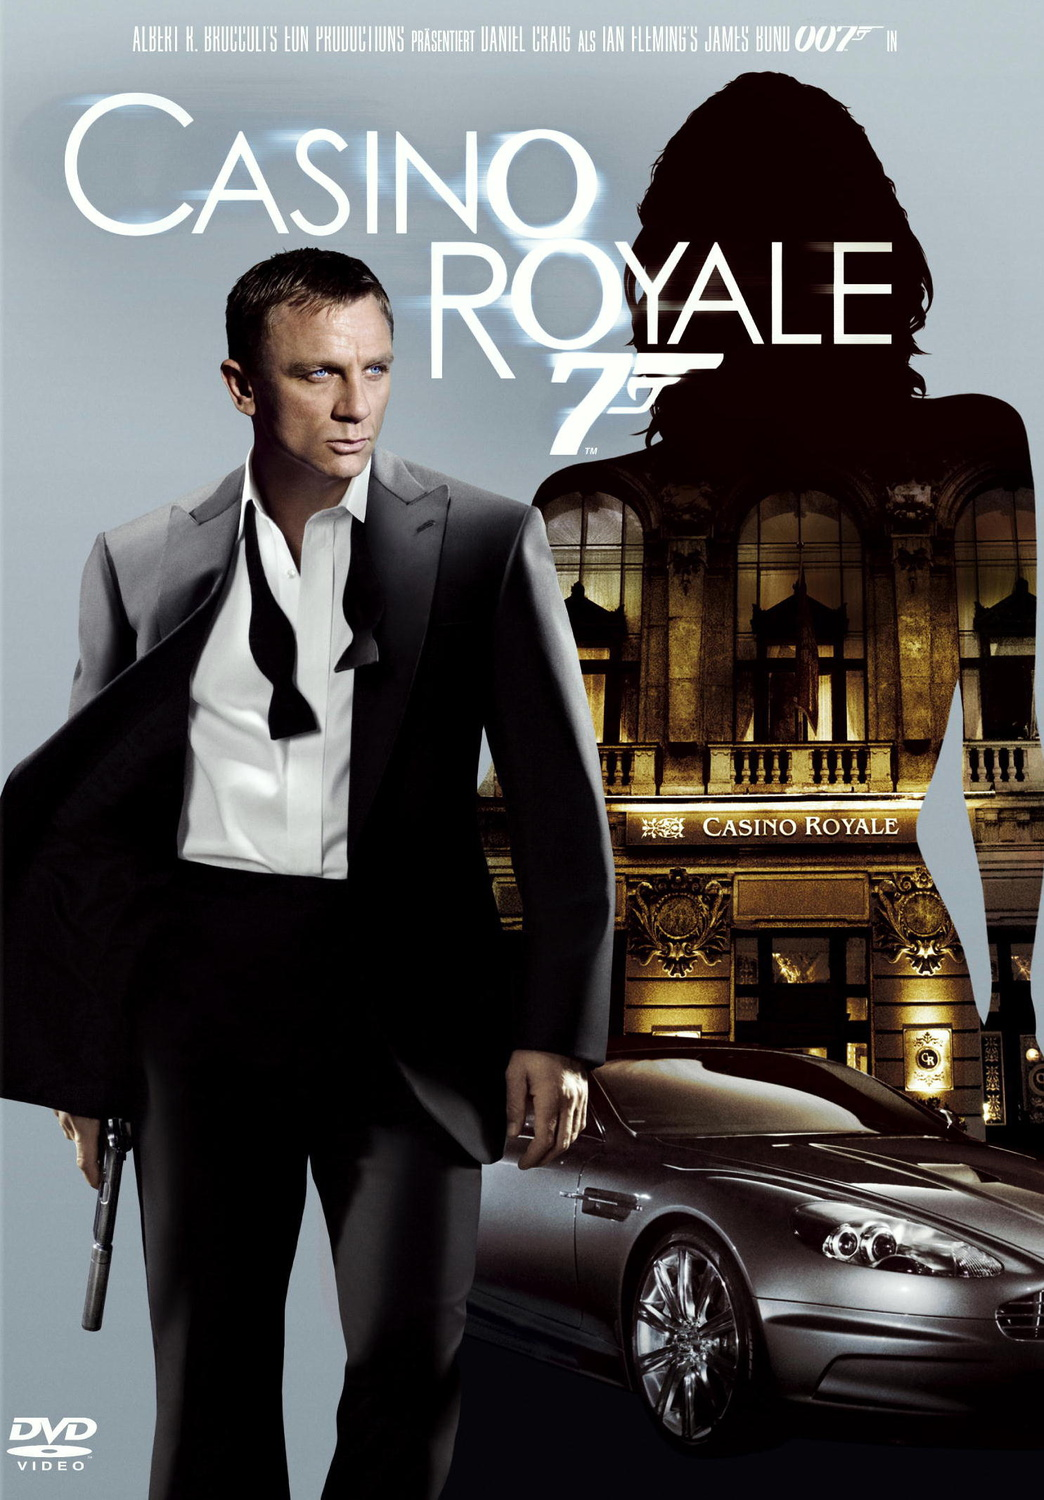 darsteller james bond casino royal